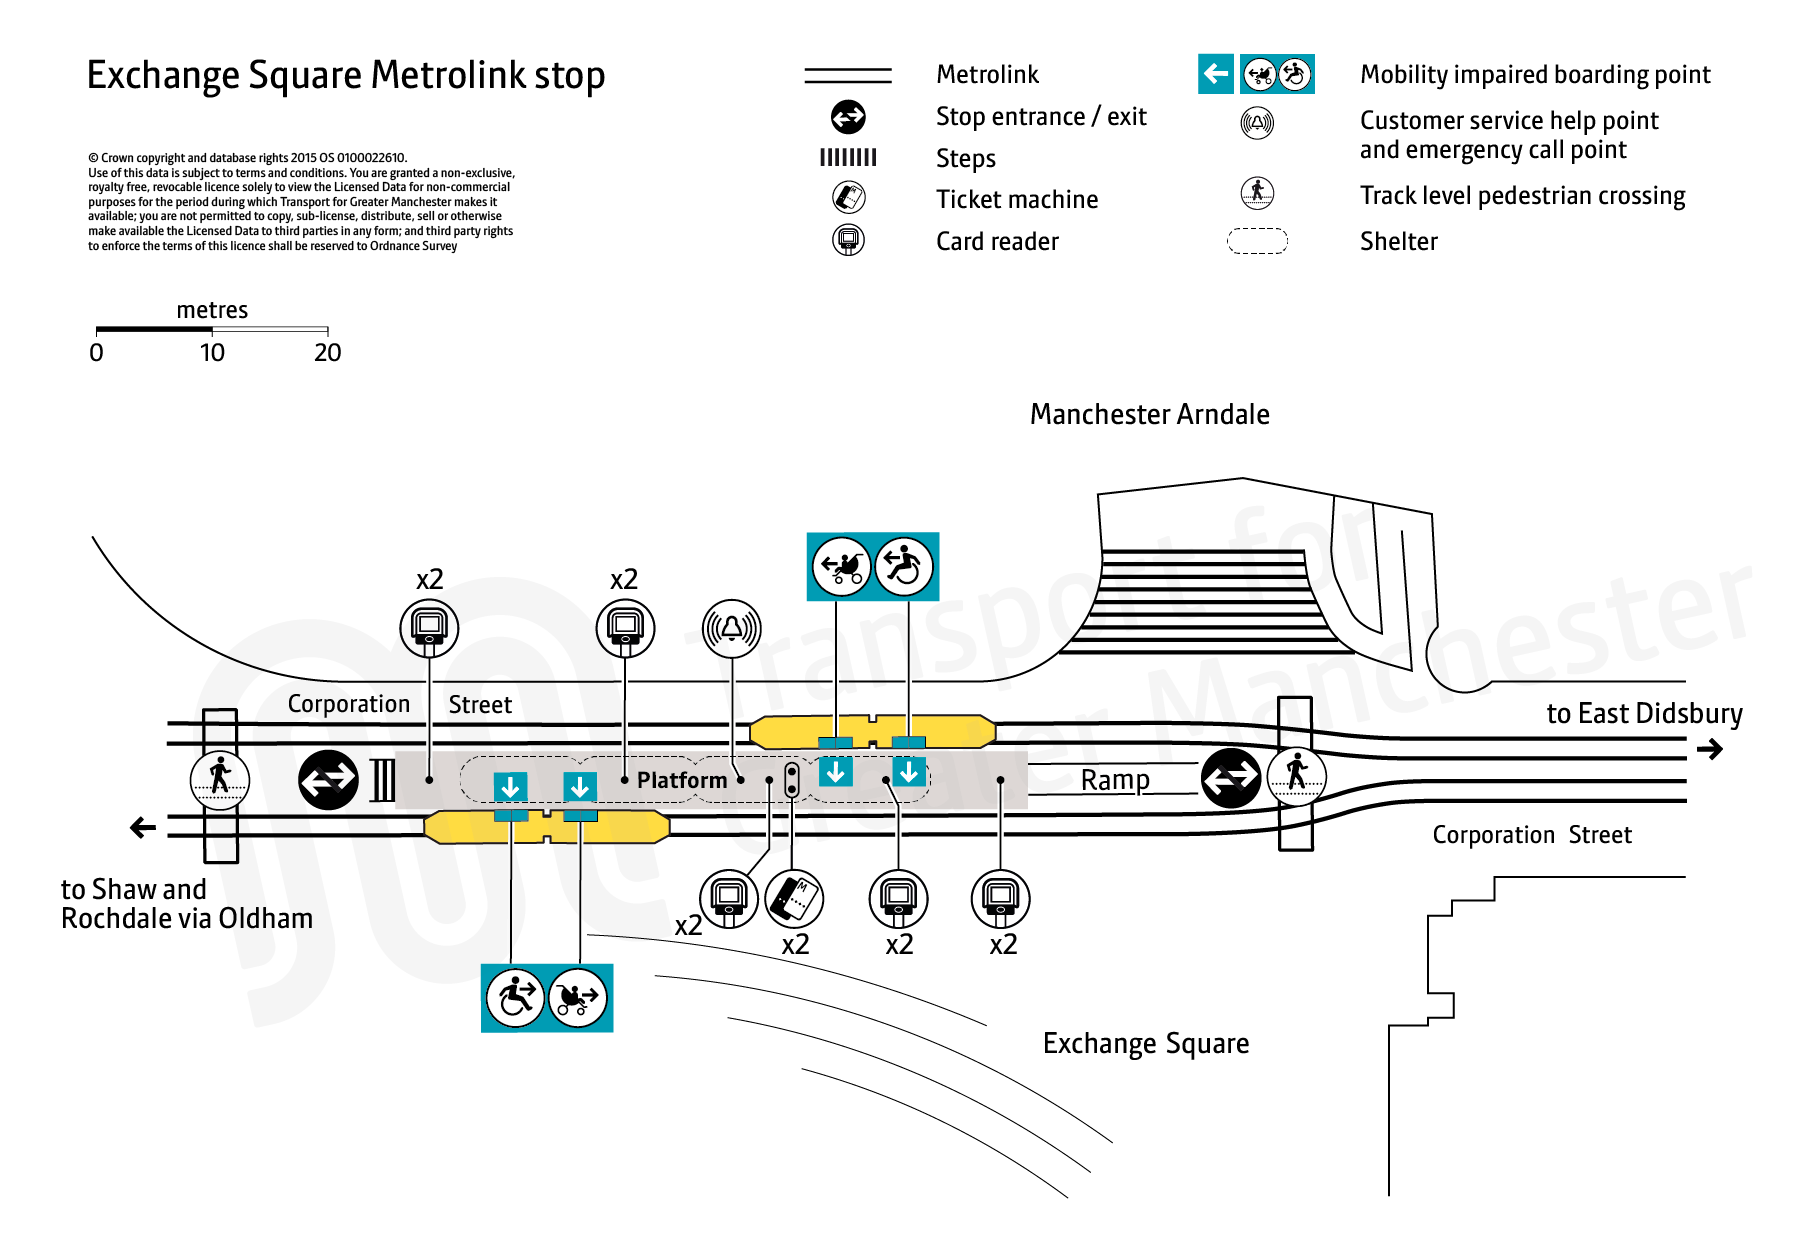 Stop map for Exchange Square tram stop